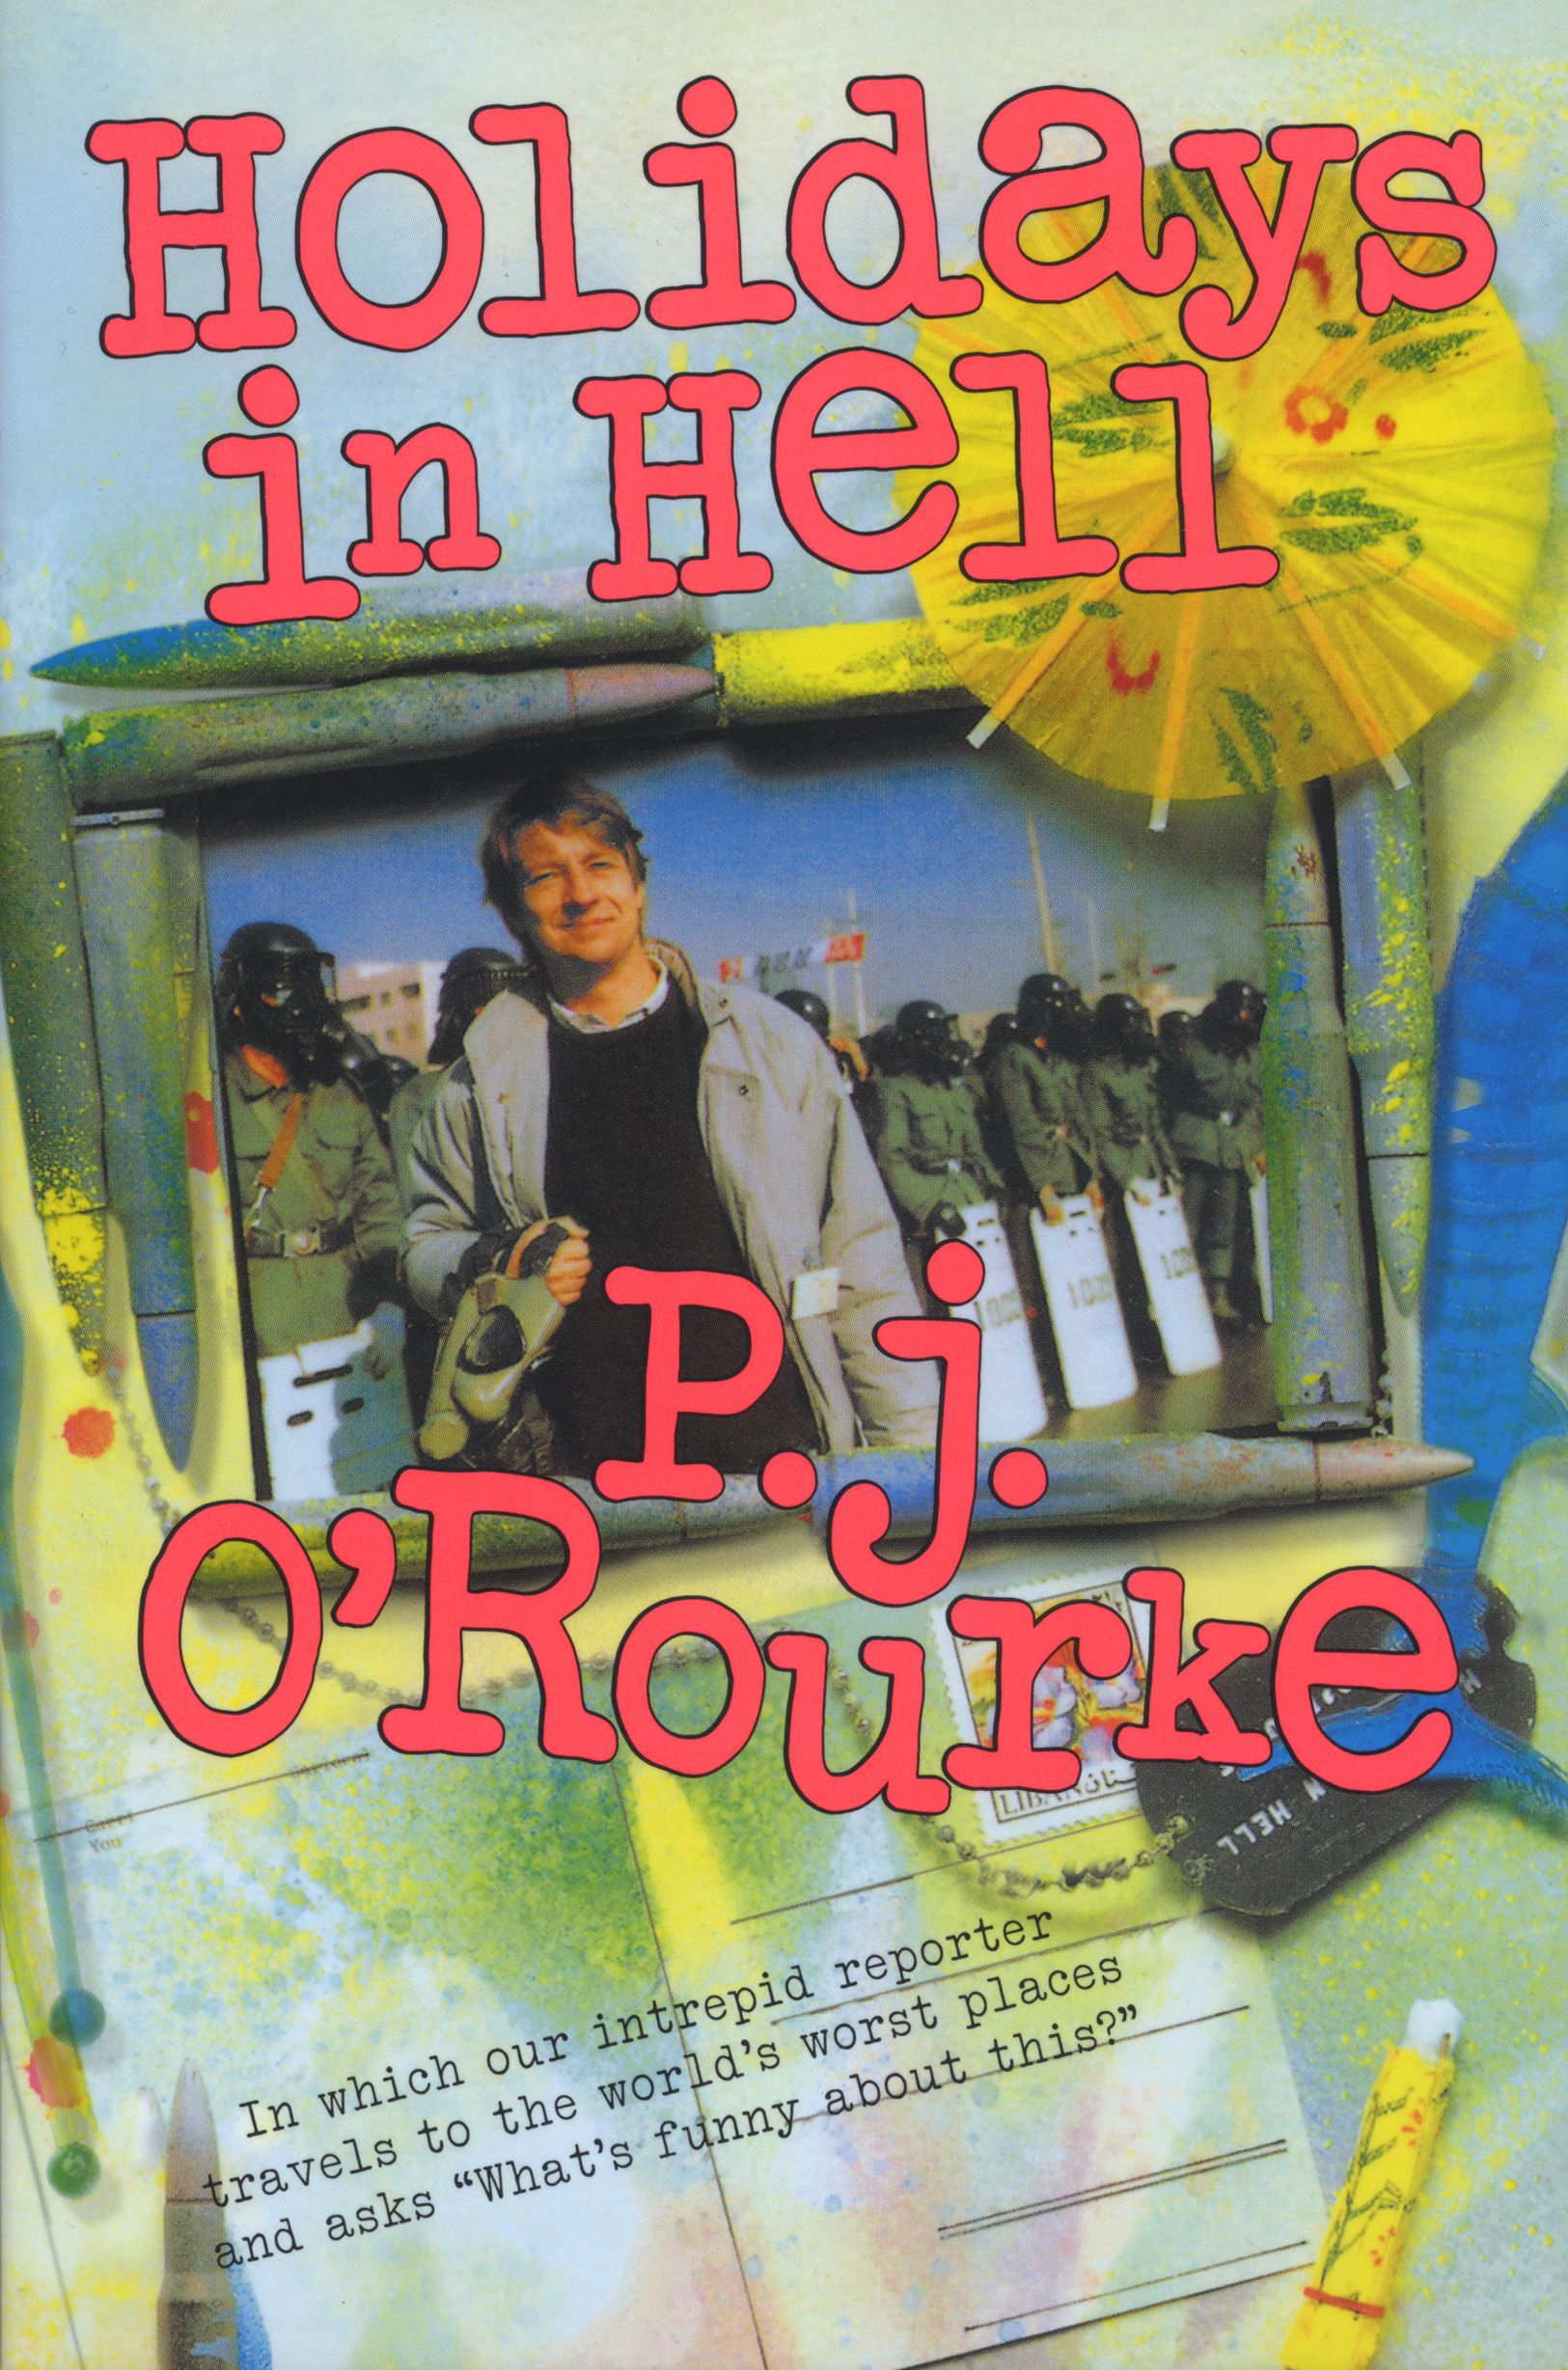 Image result for holidays in hell book cover